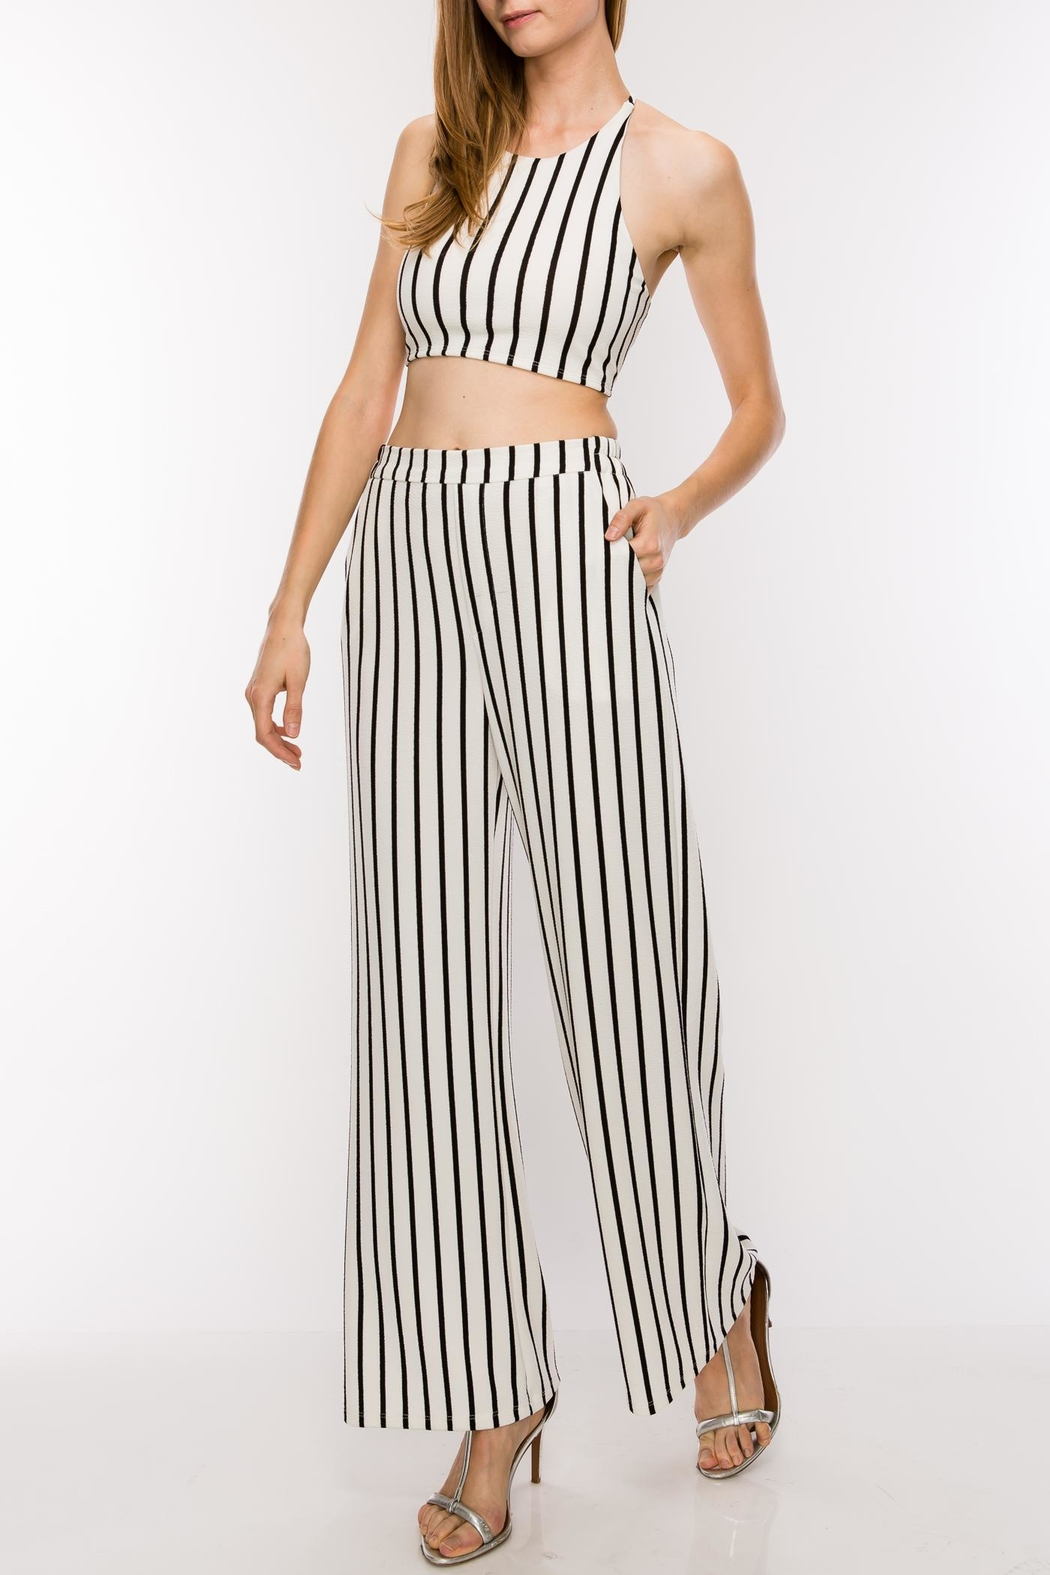 HYFVE Striped Two Piece - Main Image